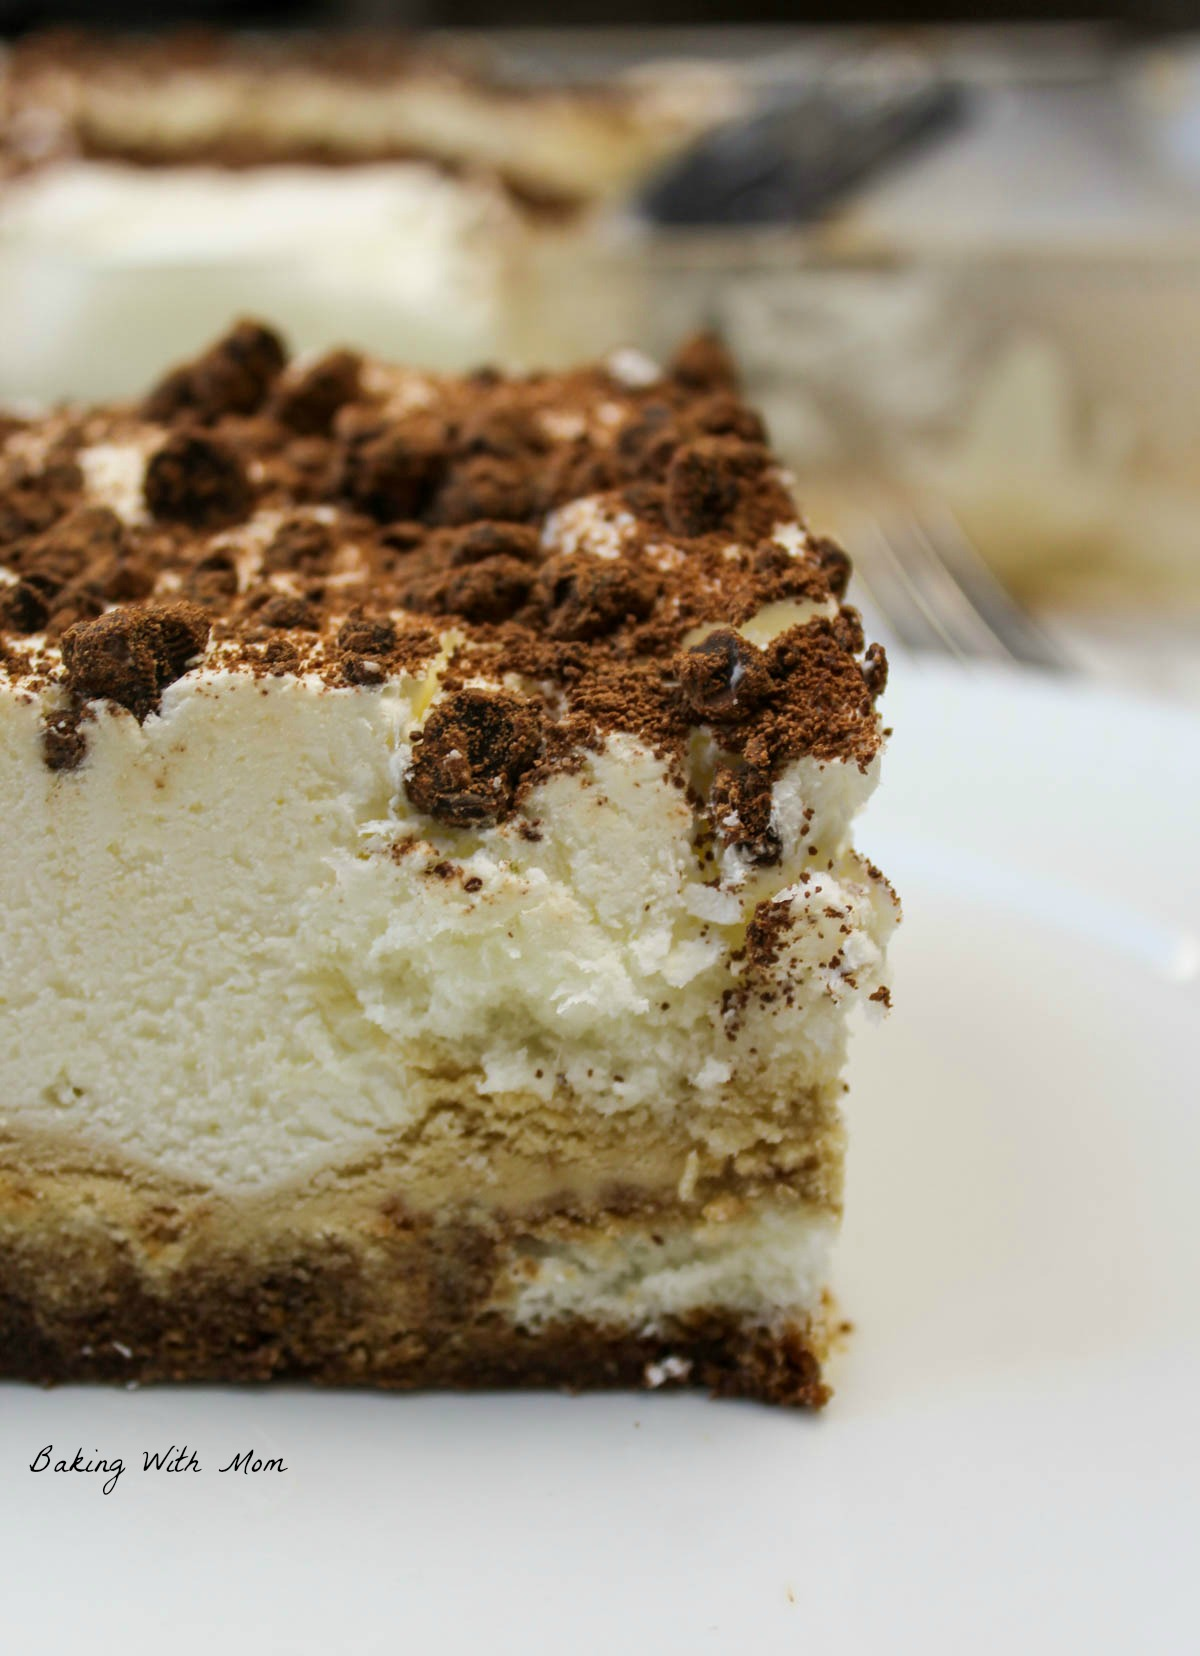 Tiramisu ice cream cake on a white plate with a fork in the background